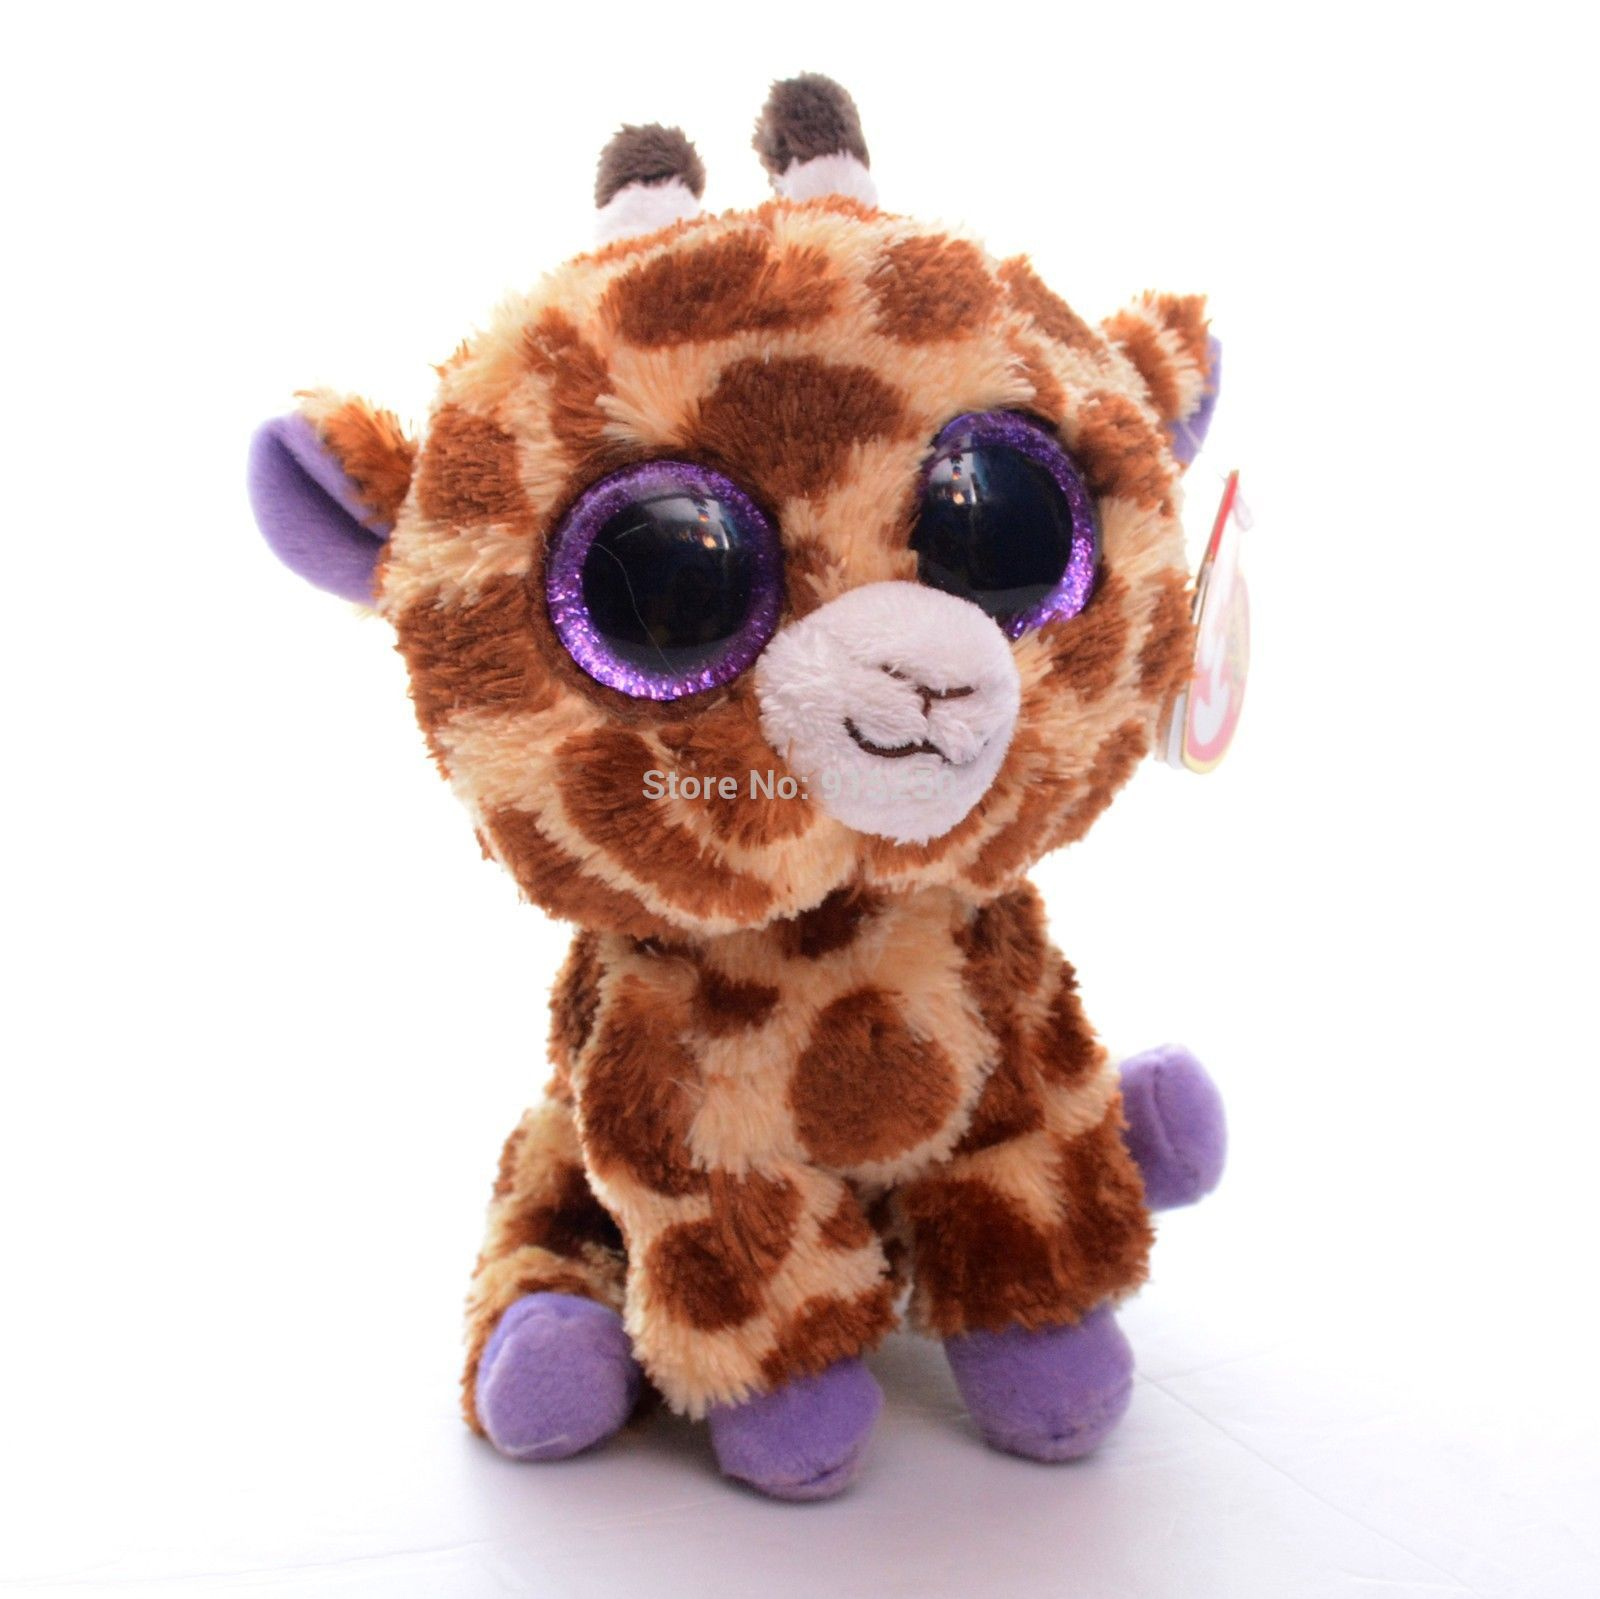 Original Ty Collection Brown Giraffe Plush Toys For Kids Doll